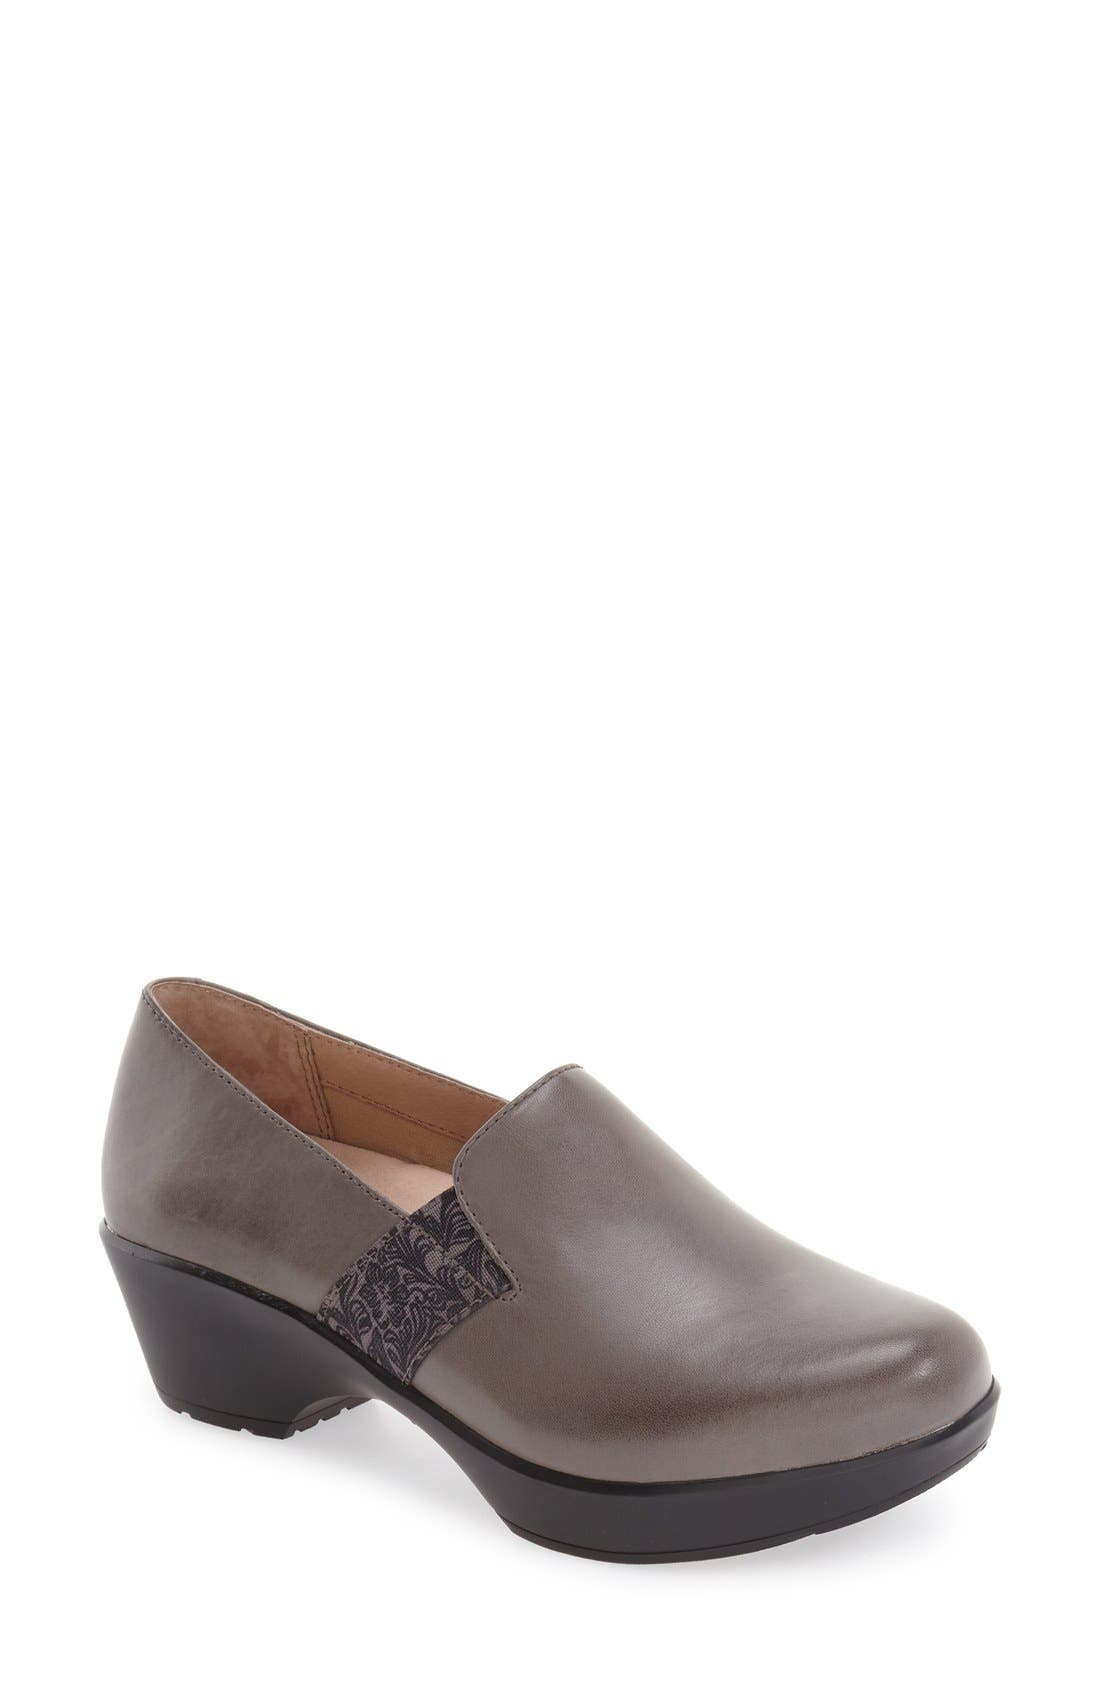 'Jessica' Platform Loafer,                             Main thumbnail 1, color,                             Grey Nappa Leather